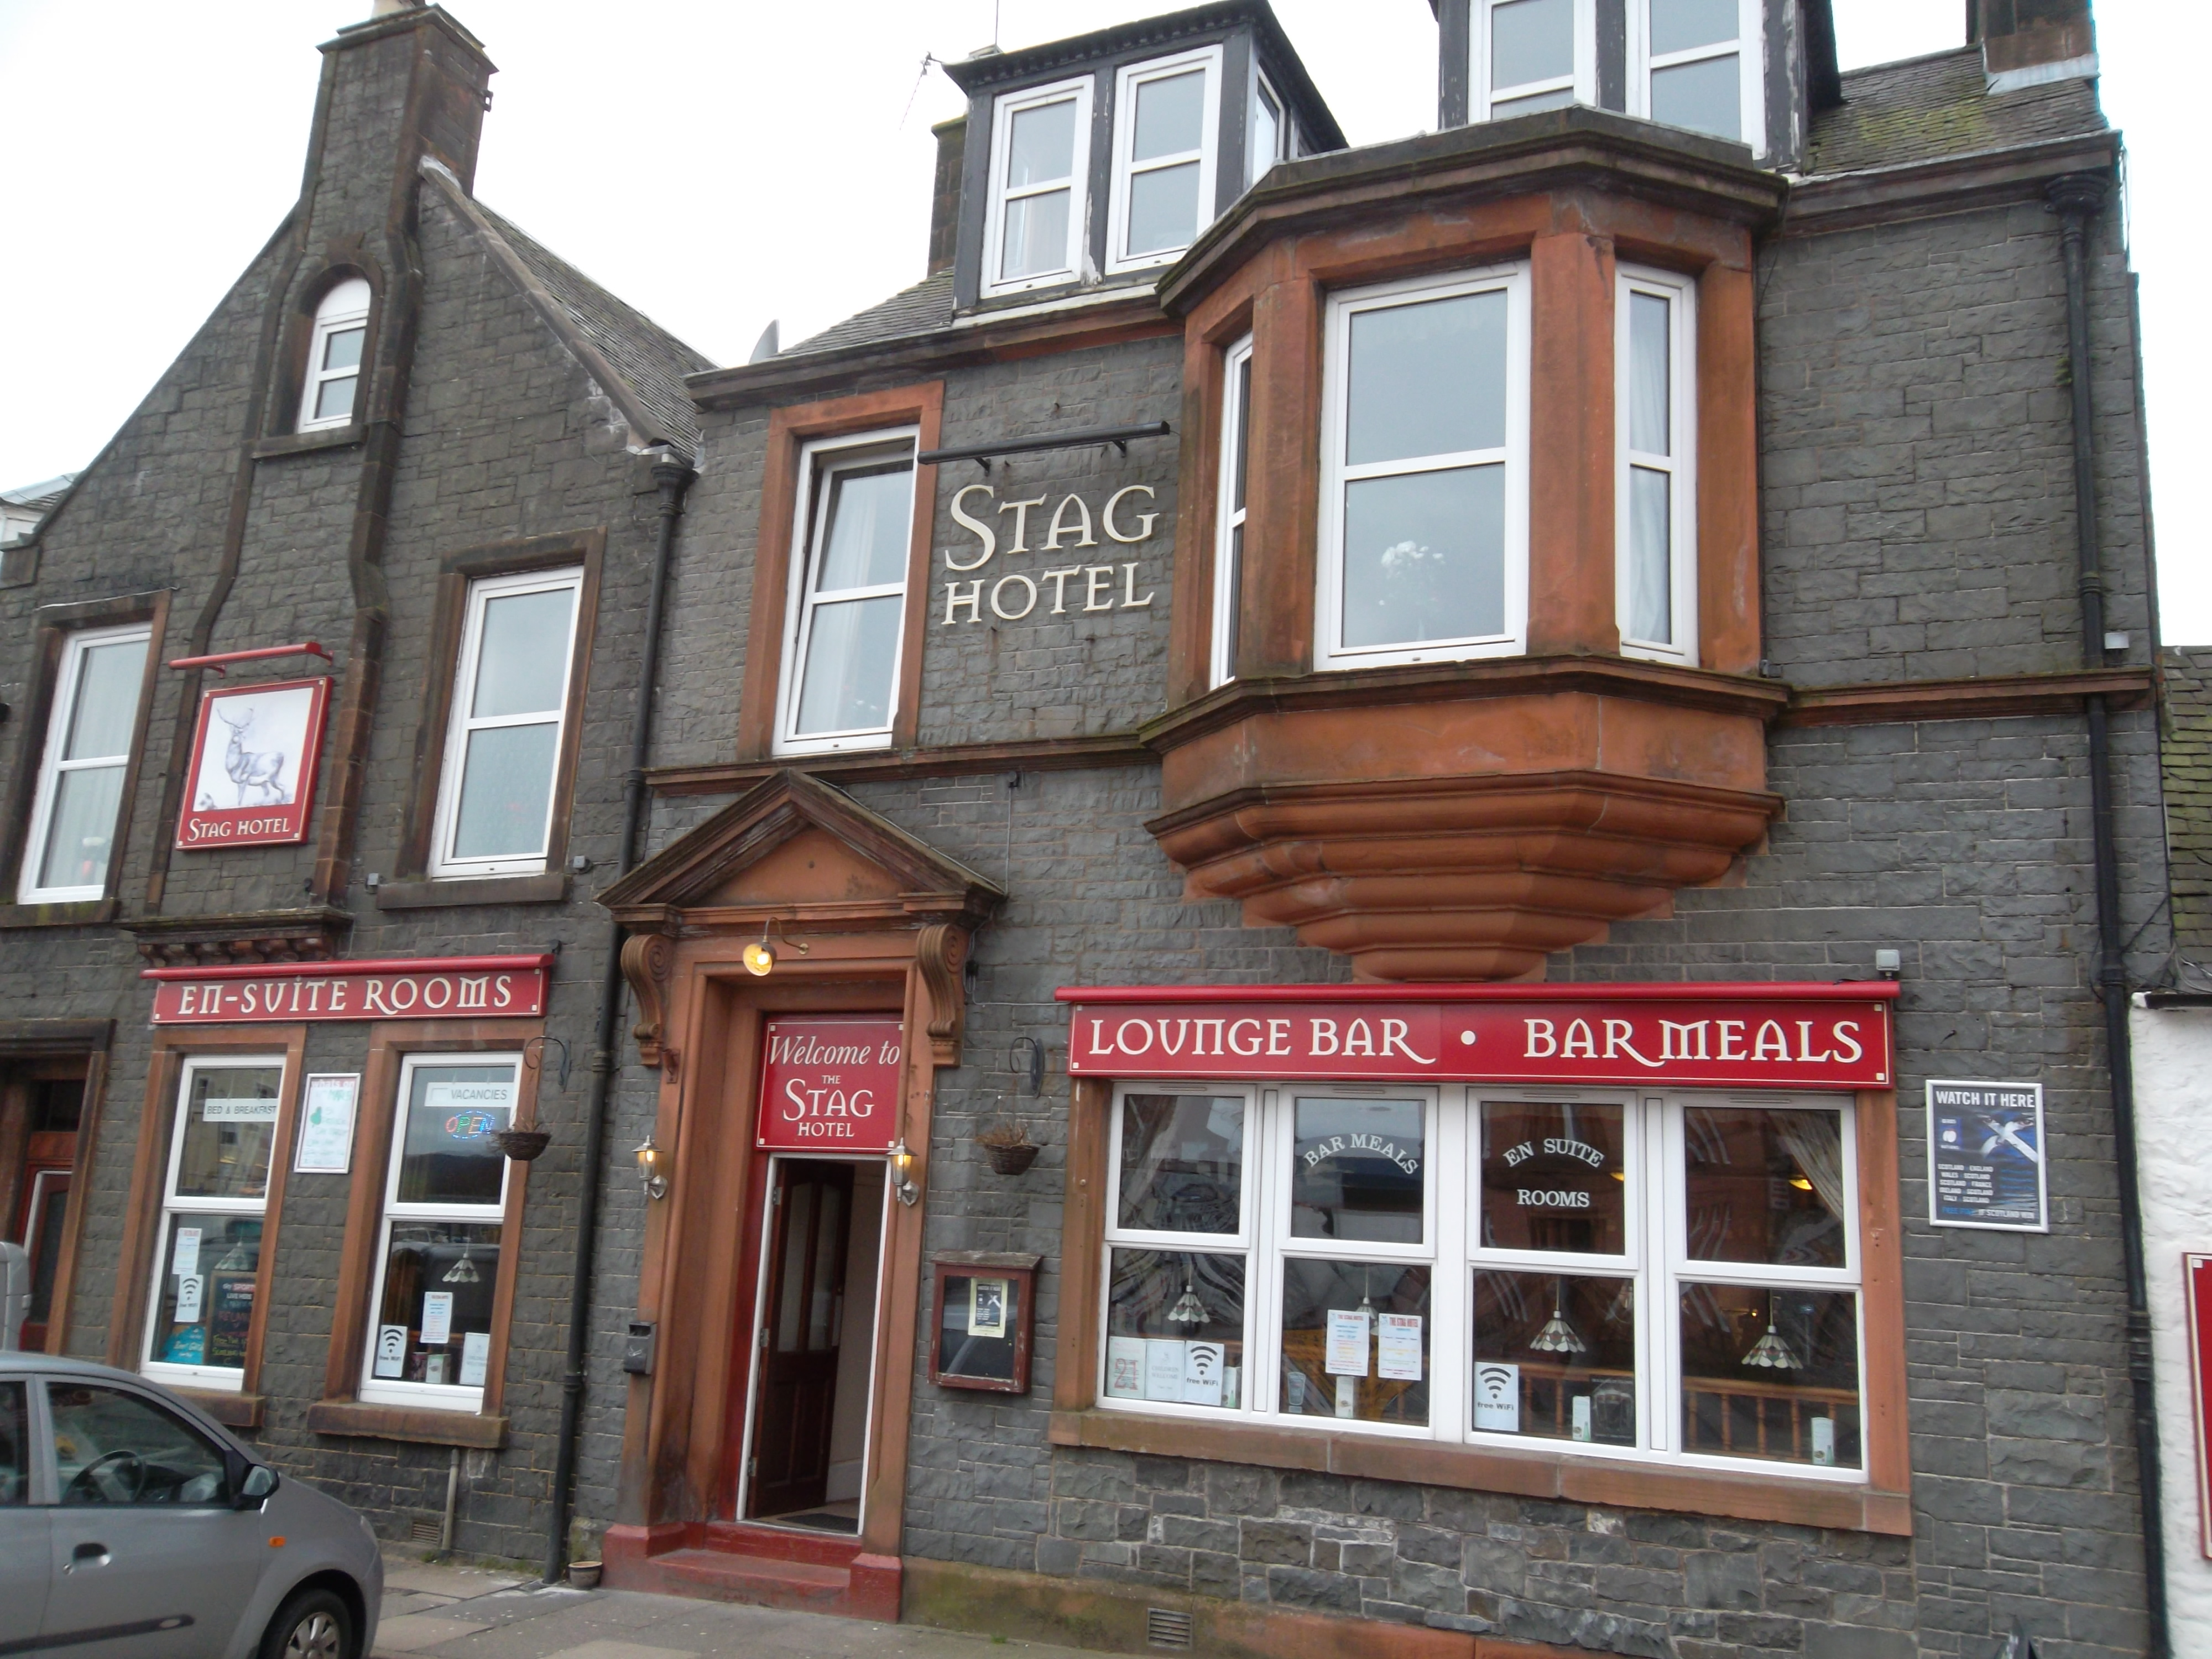 The Stag Hotel